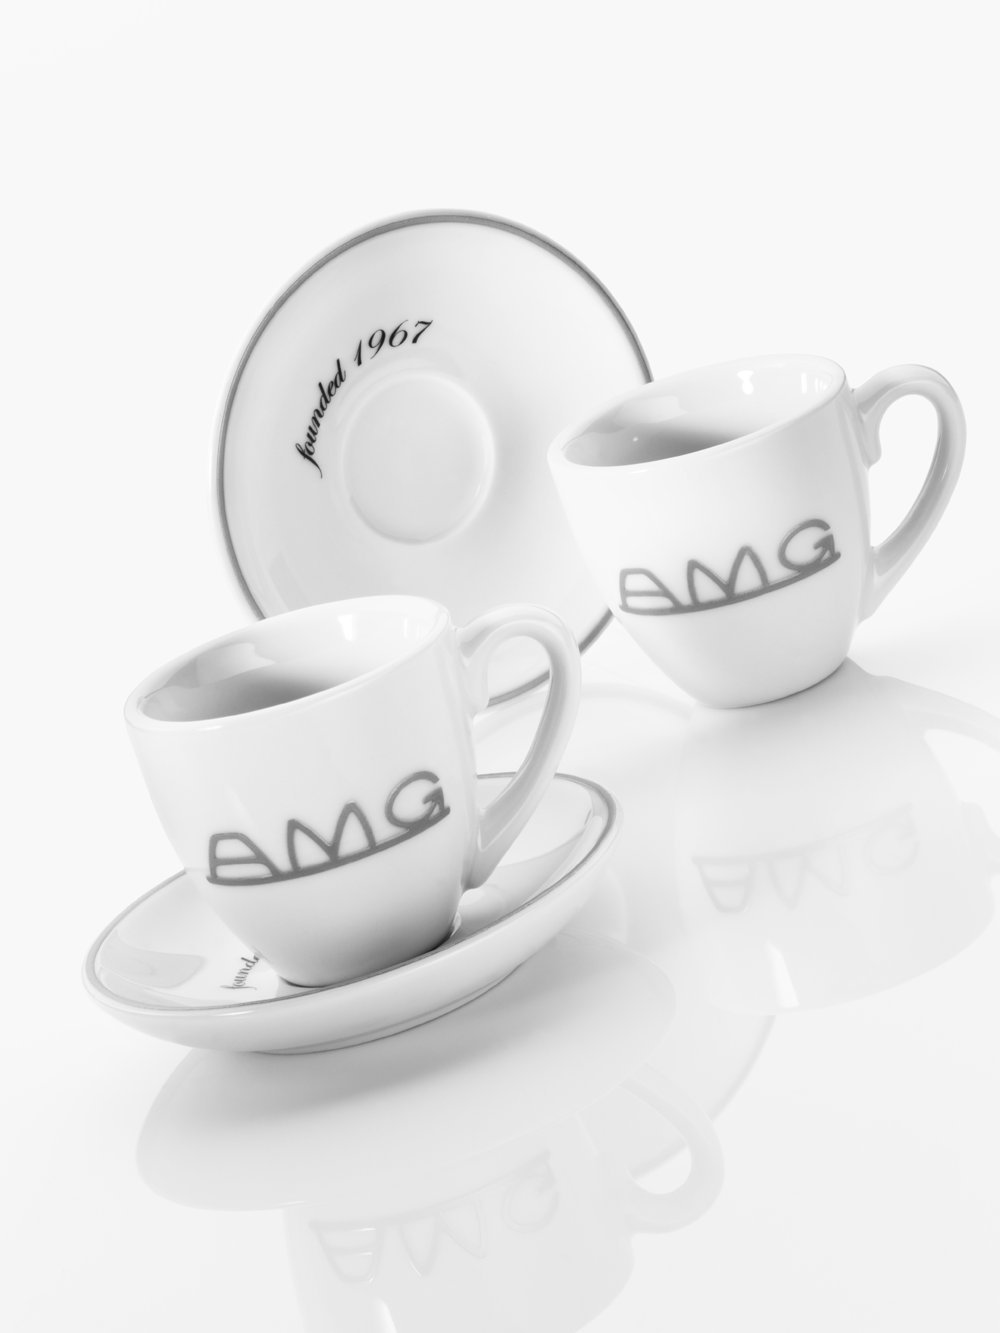 Espresso cups AMG Mercedes-Benz Set of 2